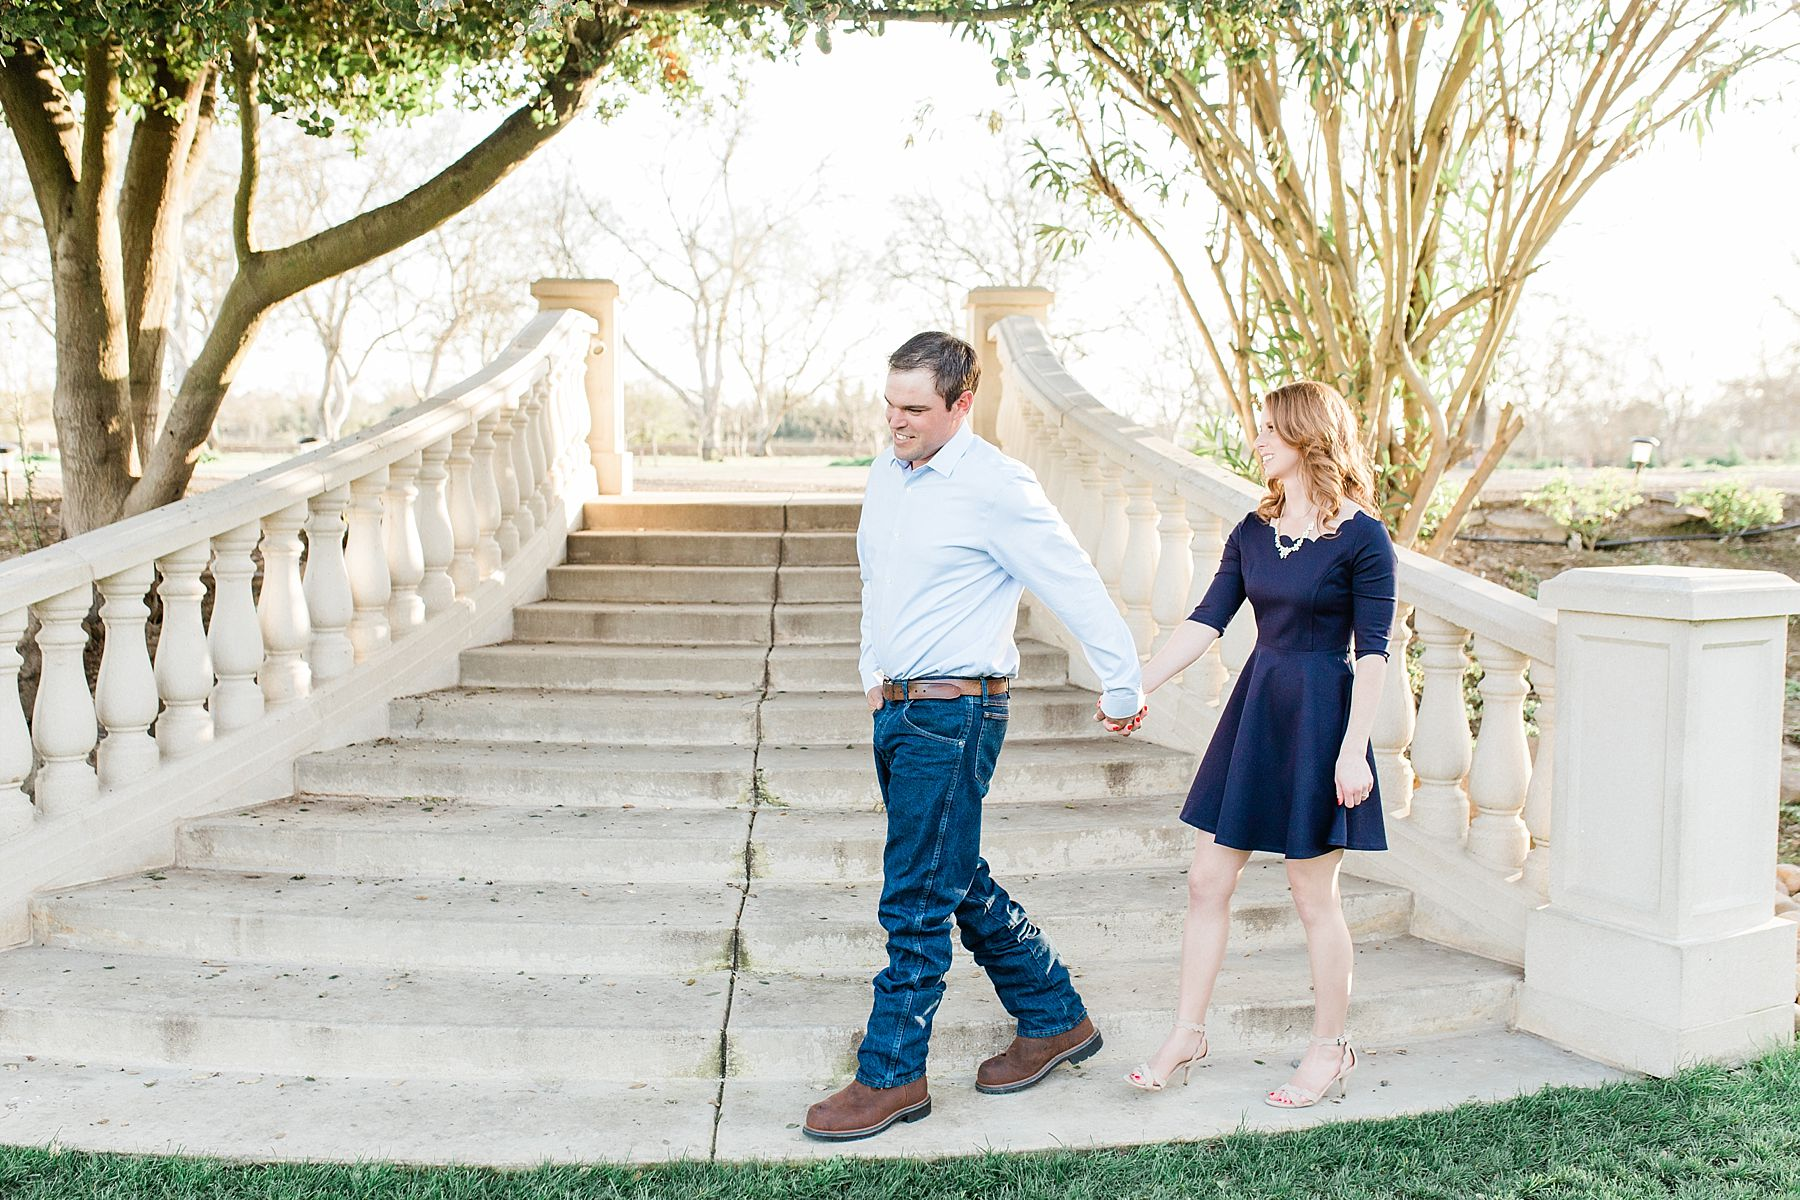 Viaggio Winery Engagement Session - Liz and TJ - Lodi Winery Wedding Photographer_0001.jpg